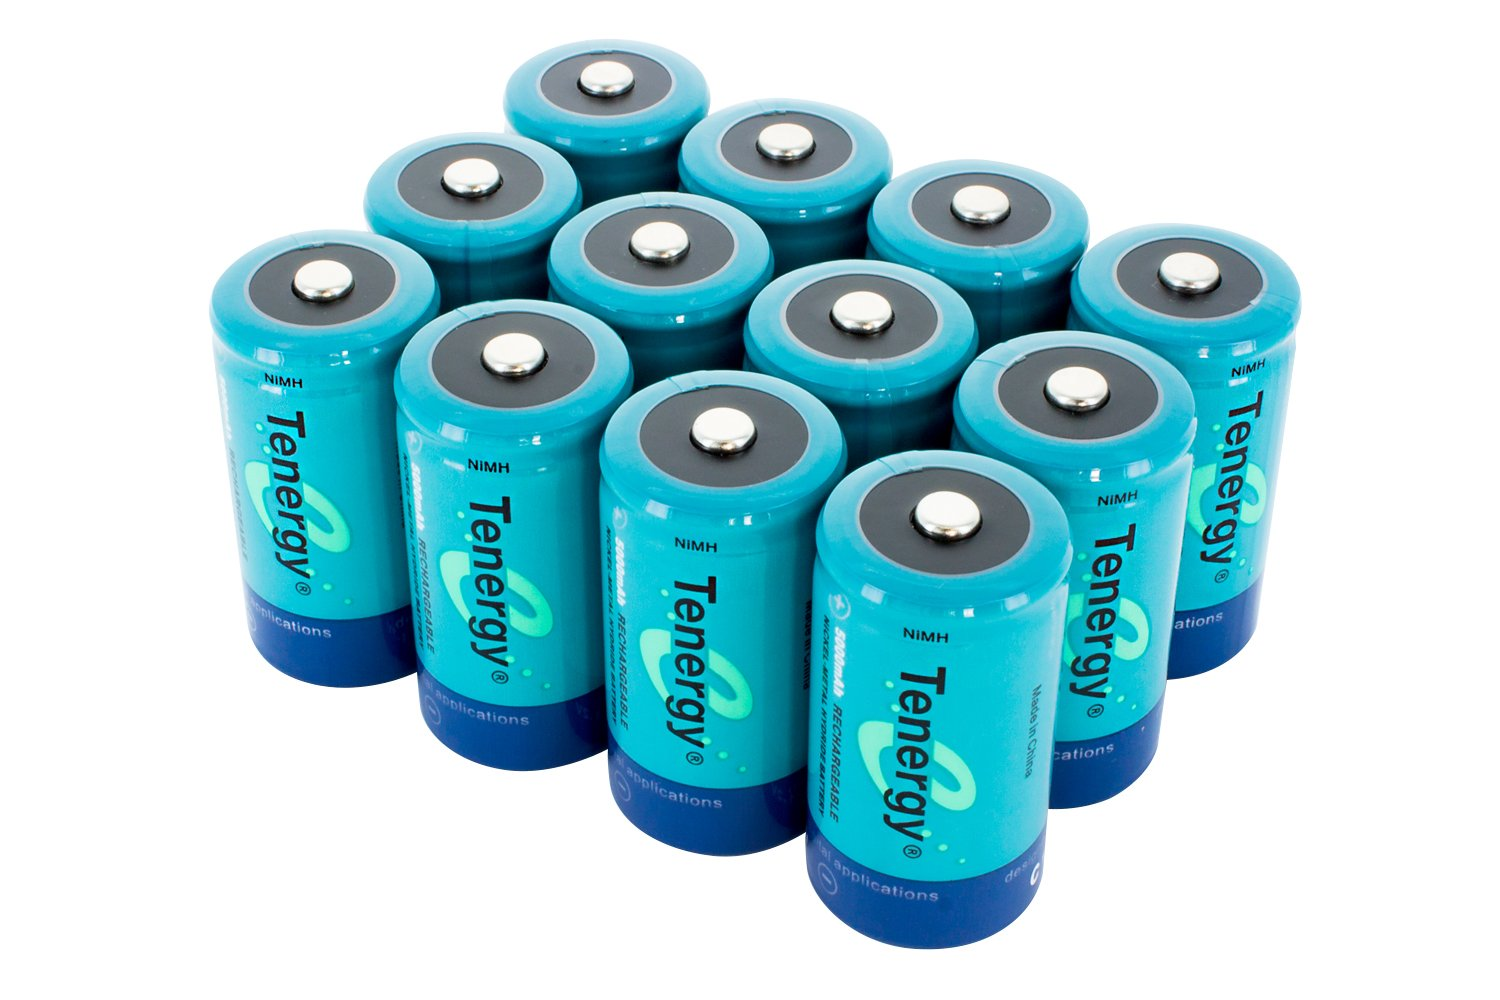 12 pcs of Tenergy C Size 5000mAh High Capacity High Rate NiMH Rechargeable Batteries by Tenergy